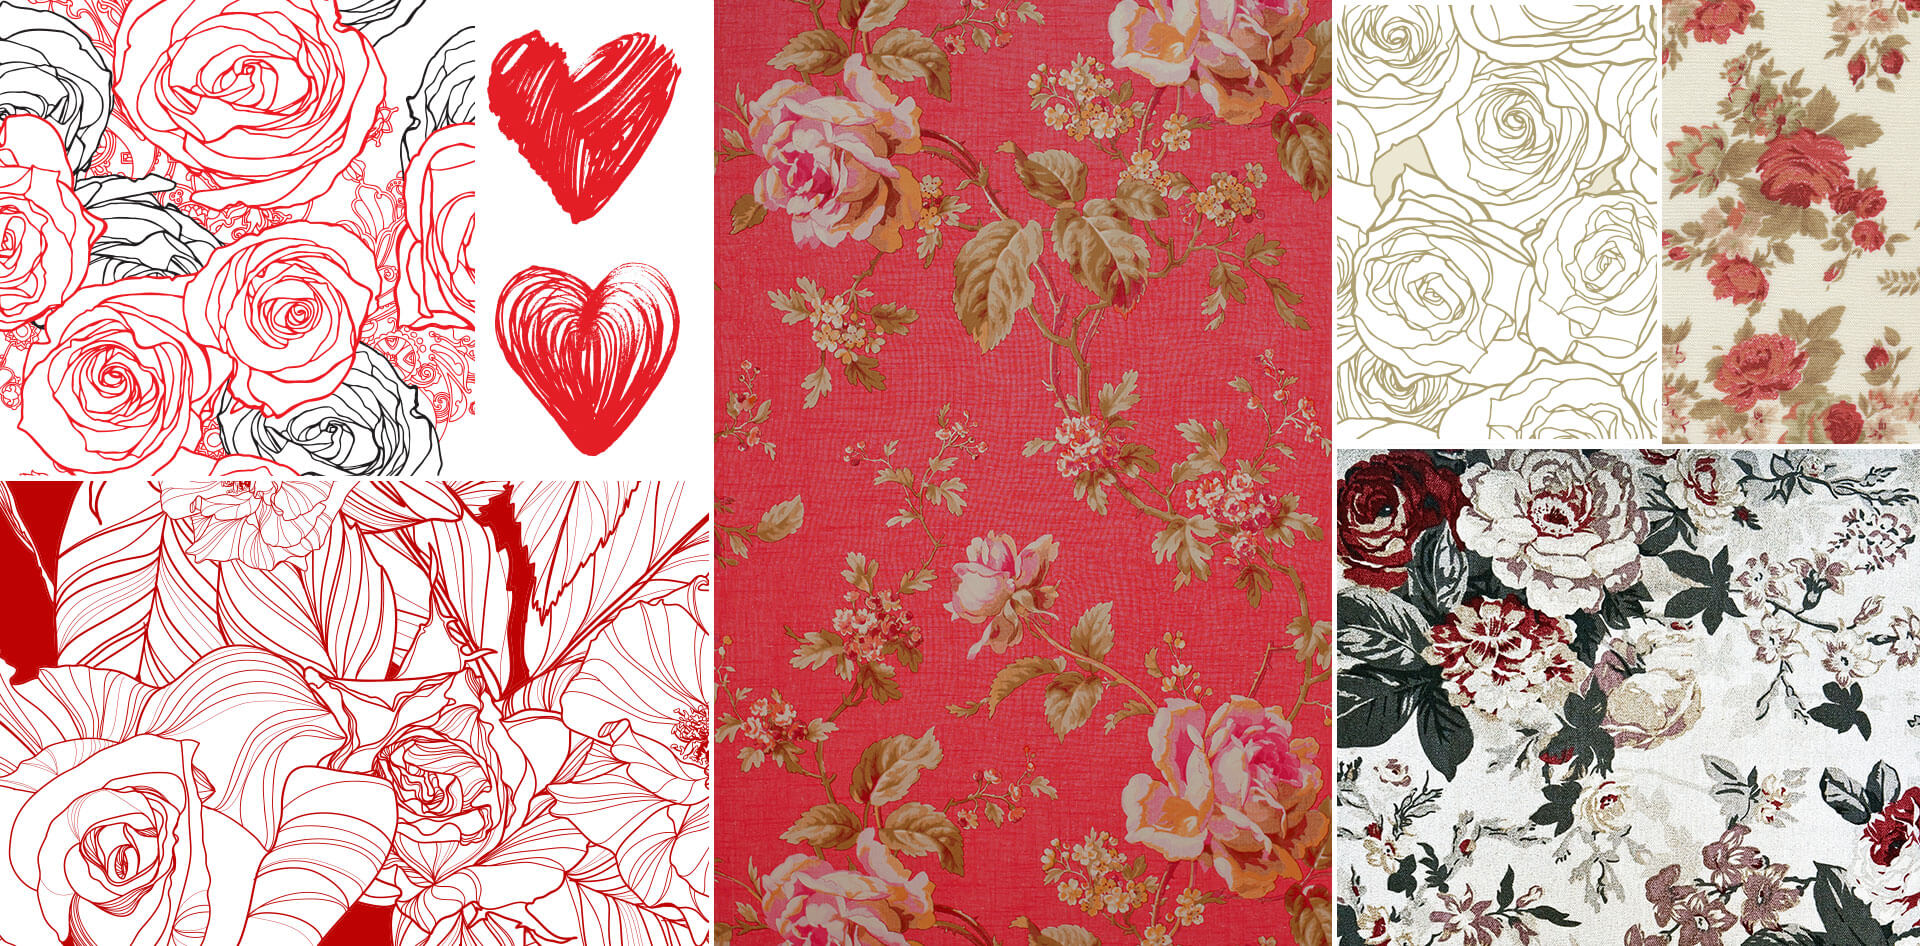 Rose floral pattern inspiration research